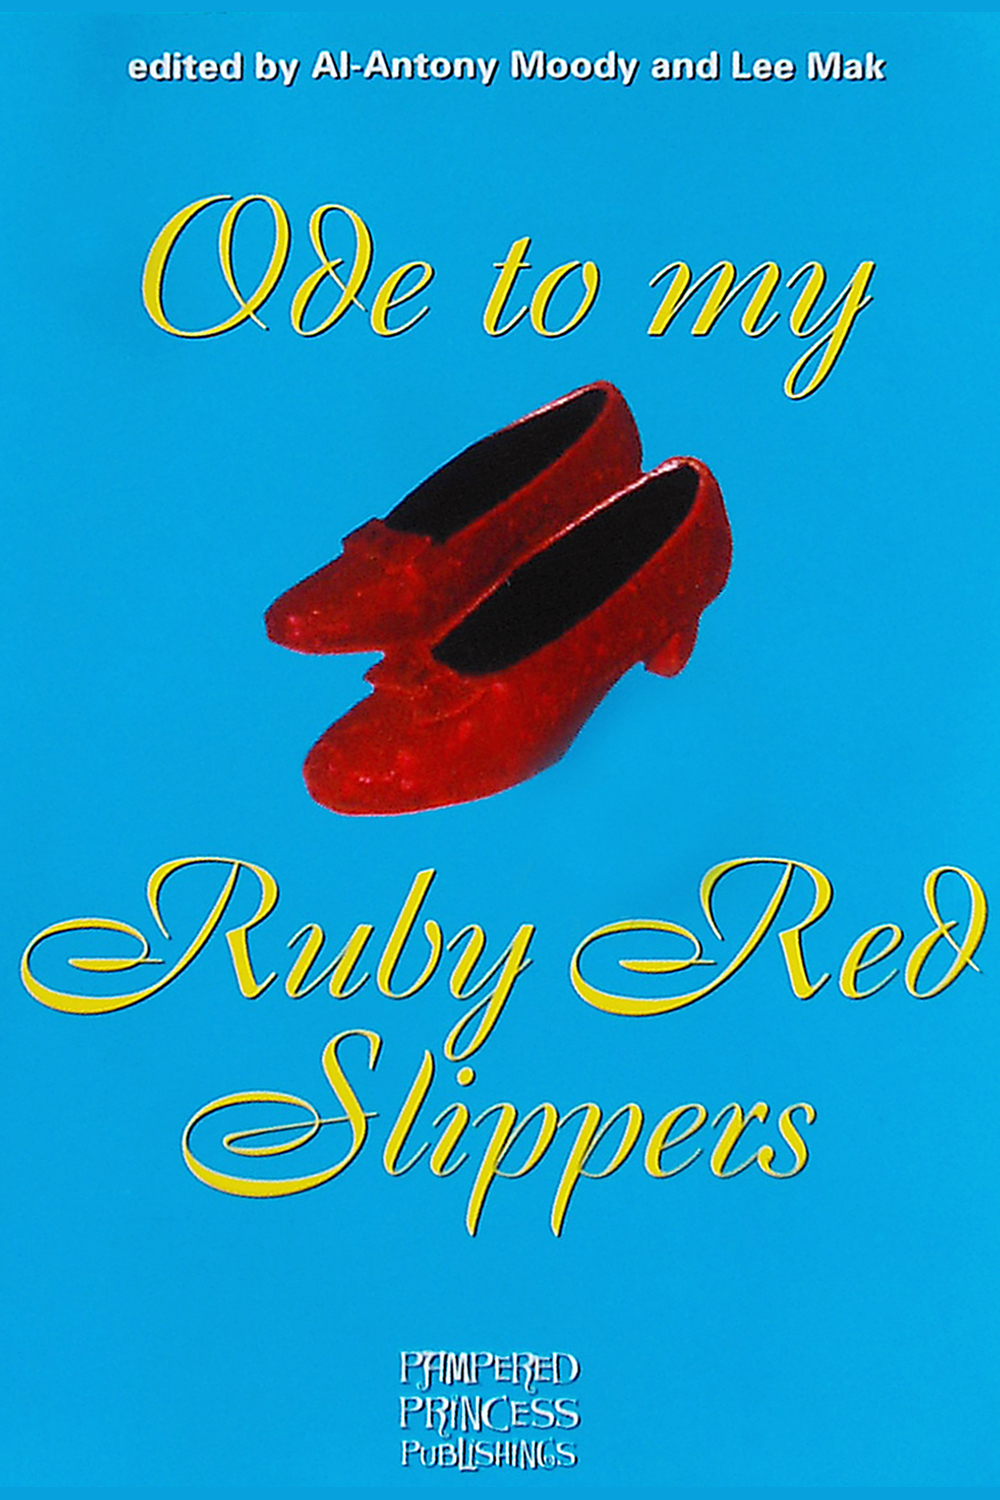 Ode to my Ruby Red Slippers edited by Al-Antony Moody and Lee Mak